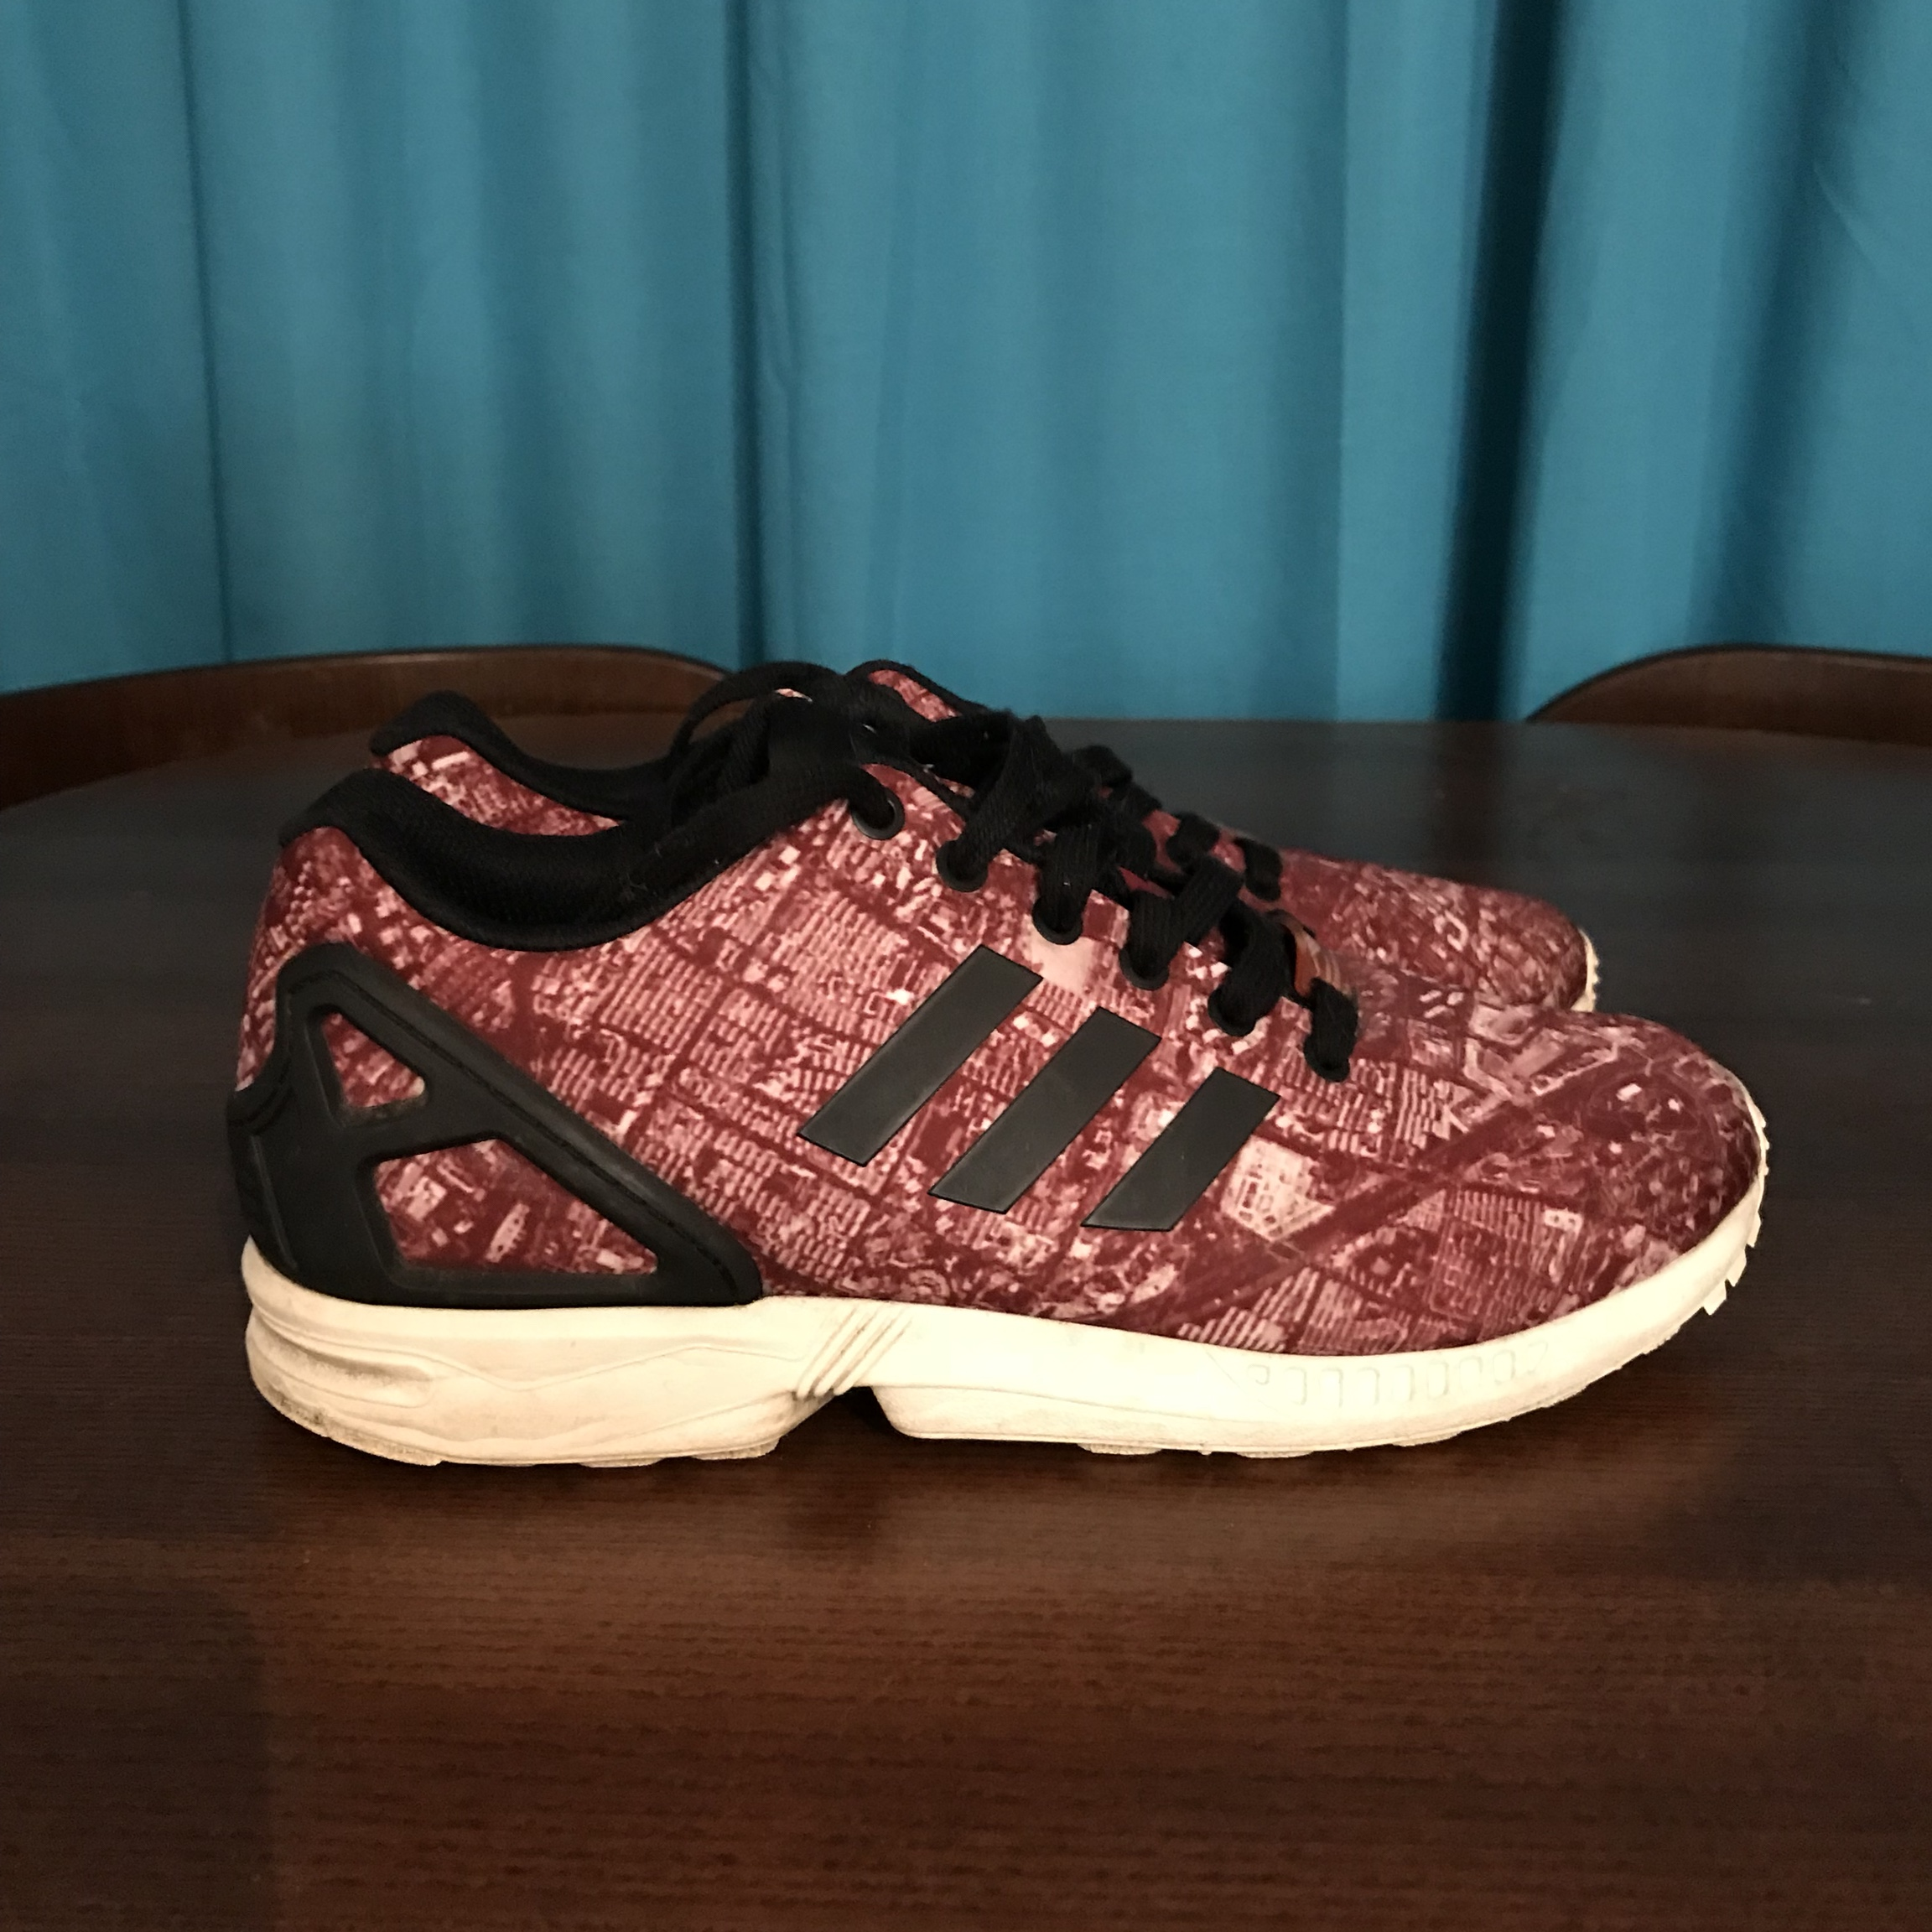 newest 2348f 088a2 Adidas ZX Flux 'Shanghai' Limited to 250 pairs... - Depop